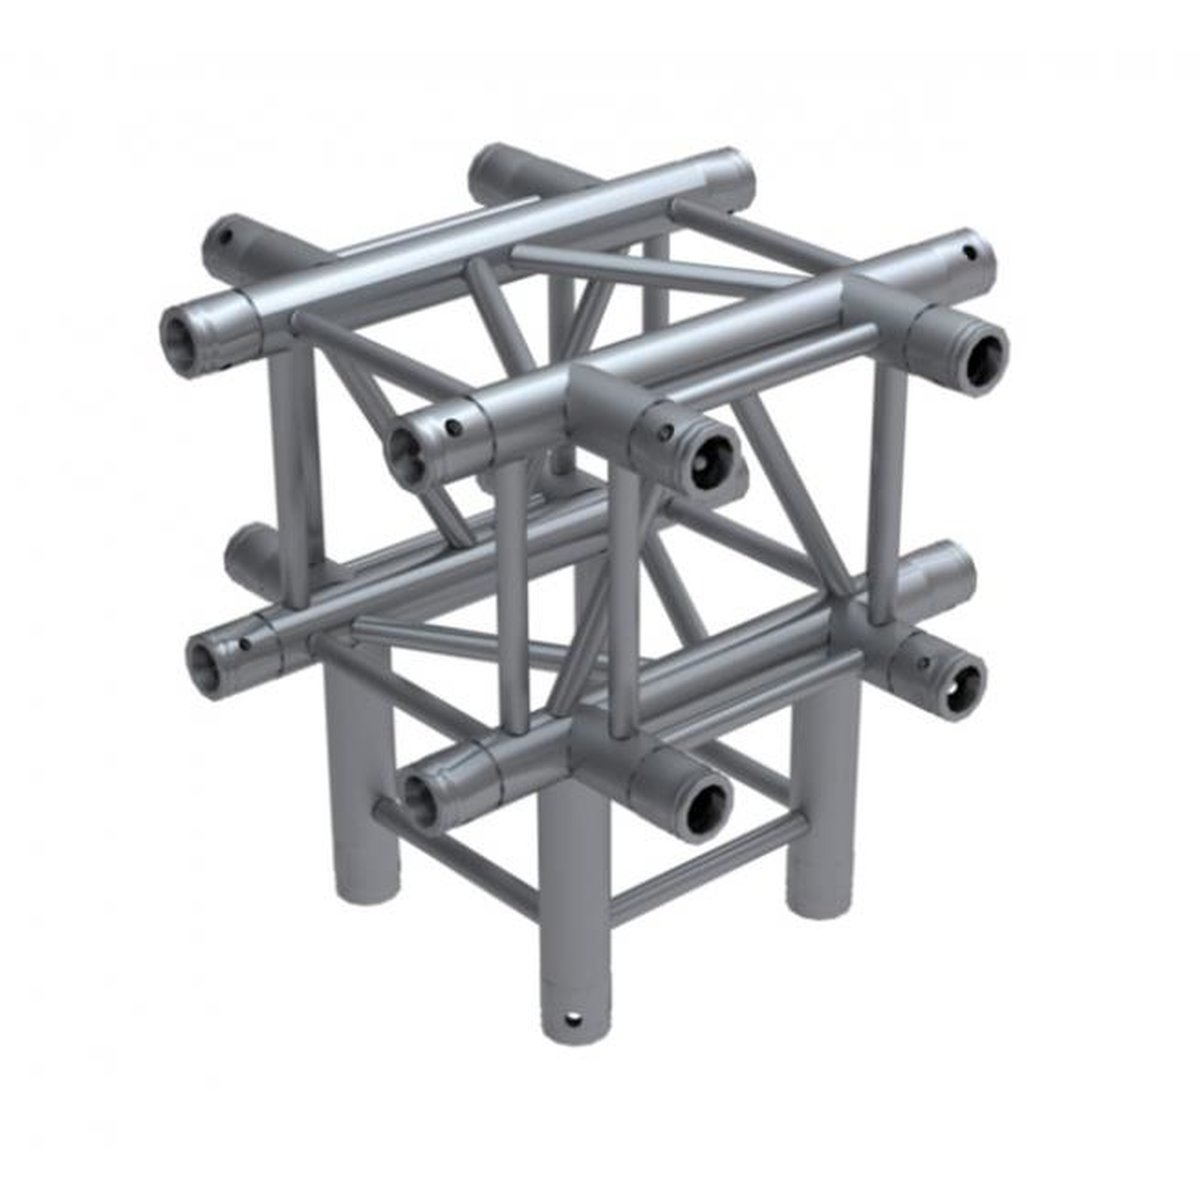 Global Truss F34, 4-Punkt Traverse, 5-Weg Ecke C55